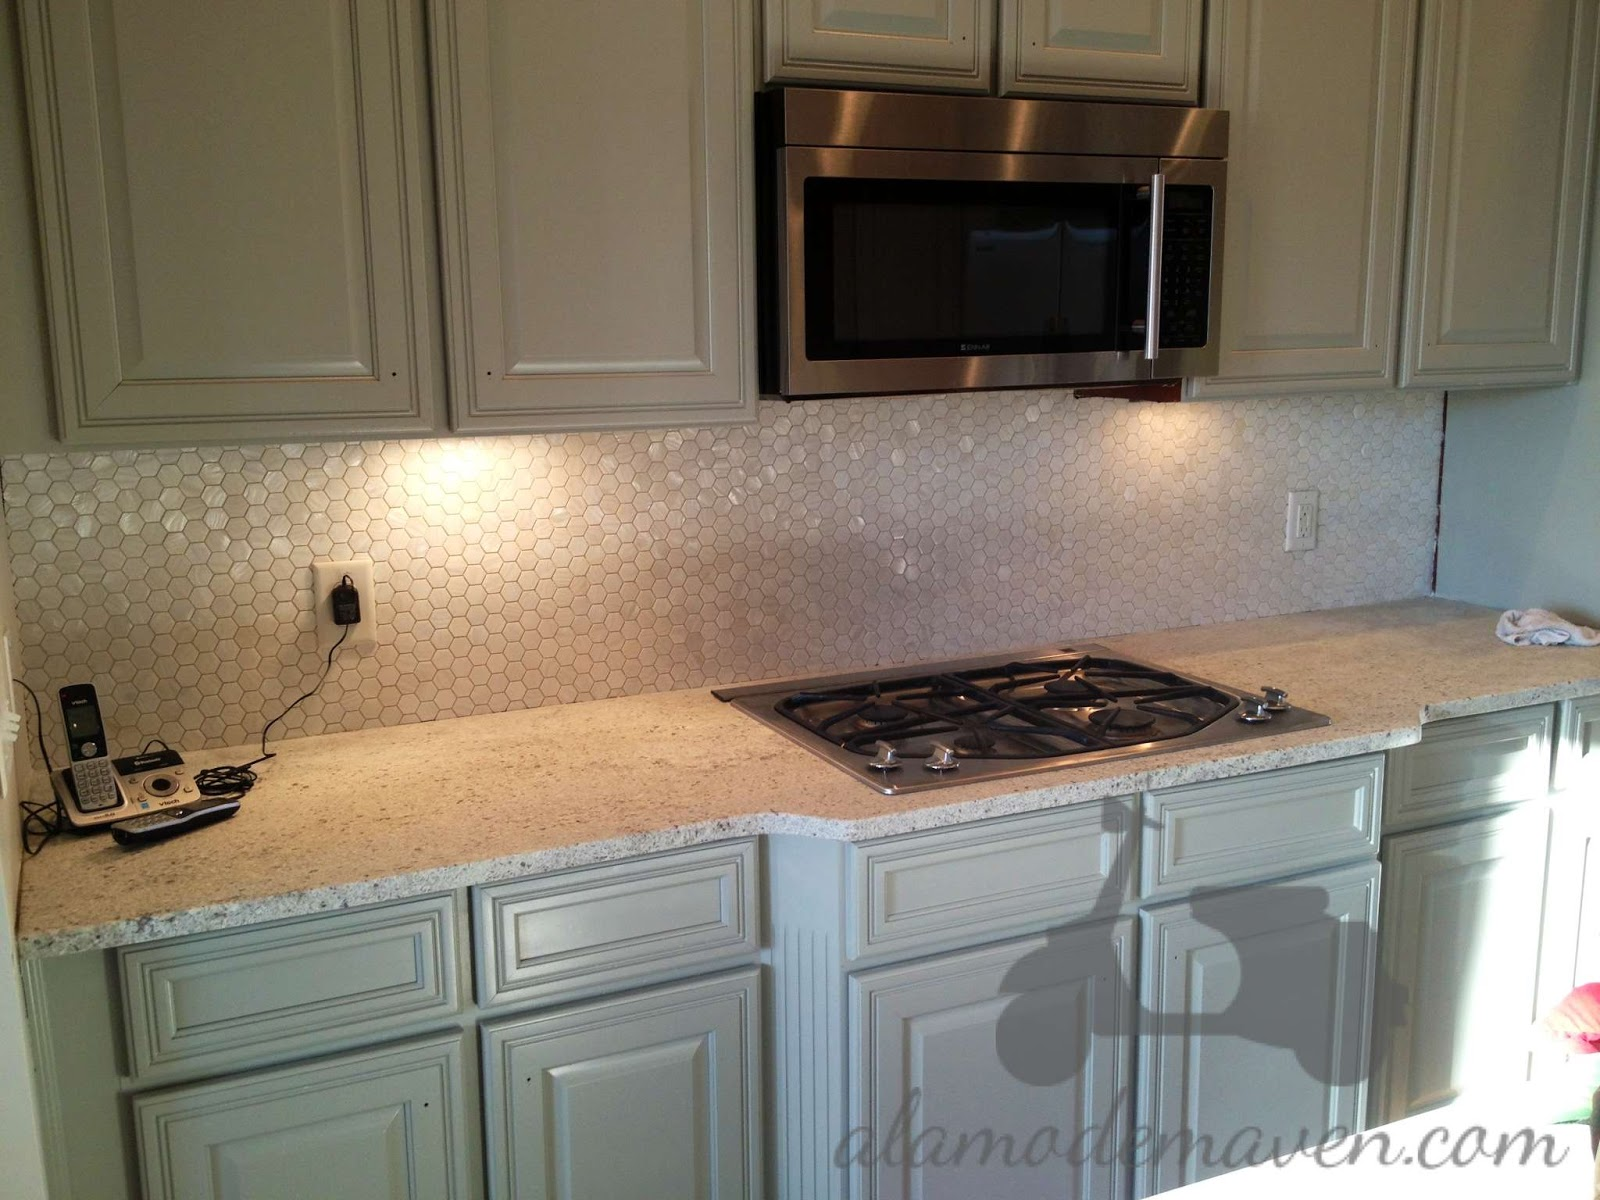 Kitchen Backsplash Tile Delta Sinks Alamode The New